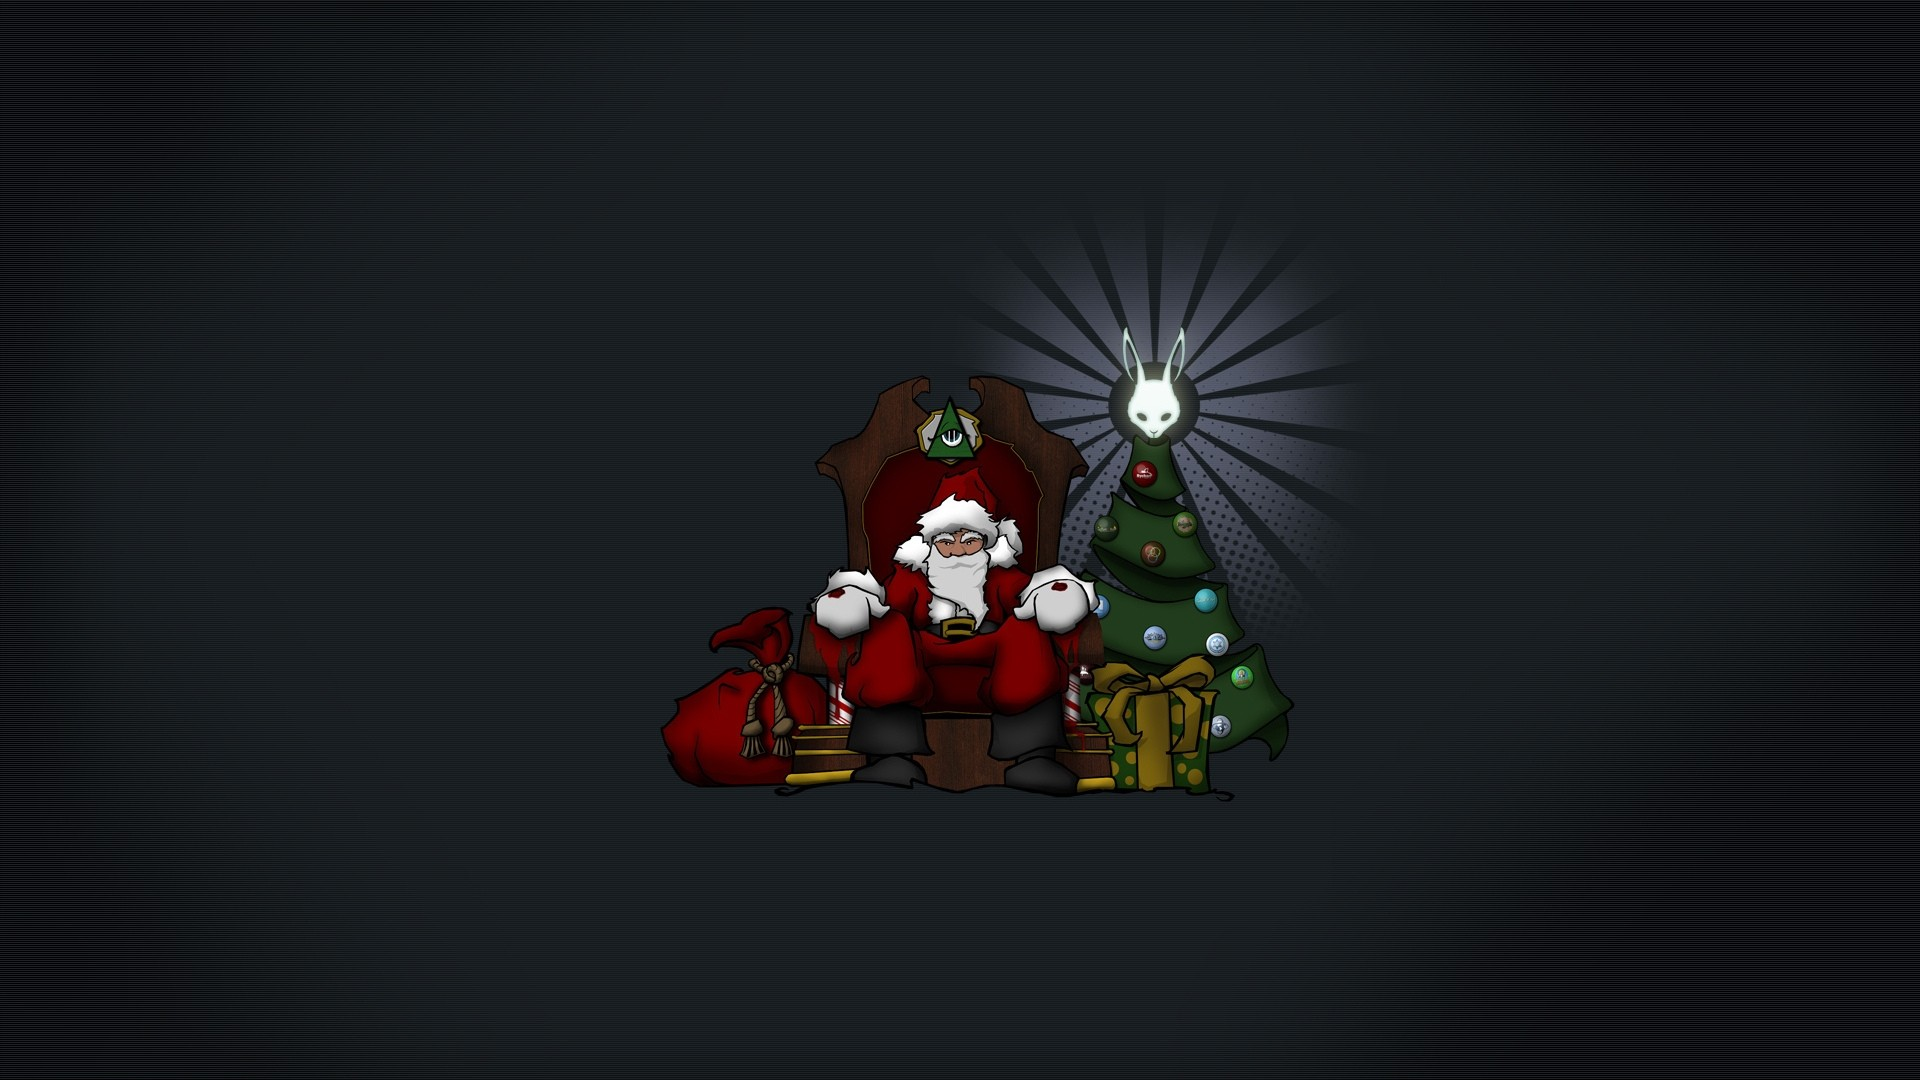 Minimalist Christmas Wallpaper Desktop